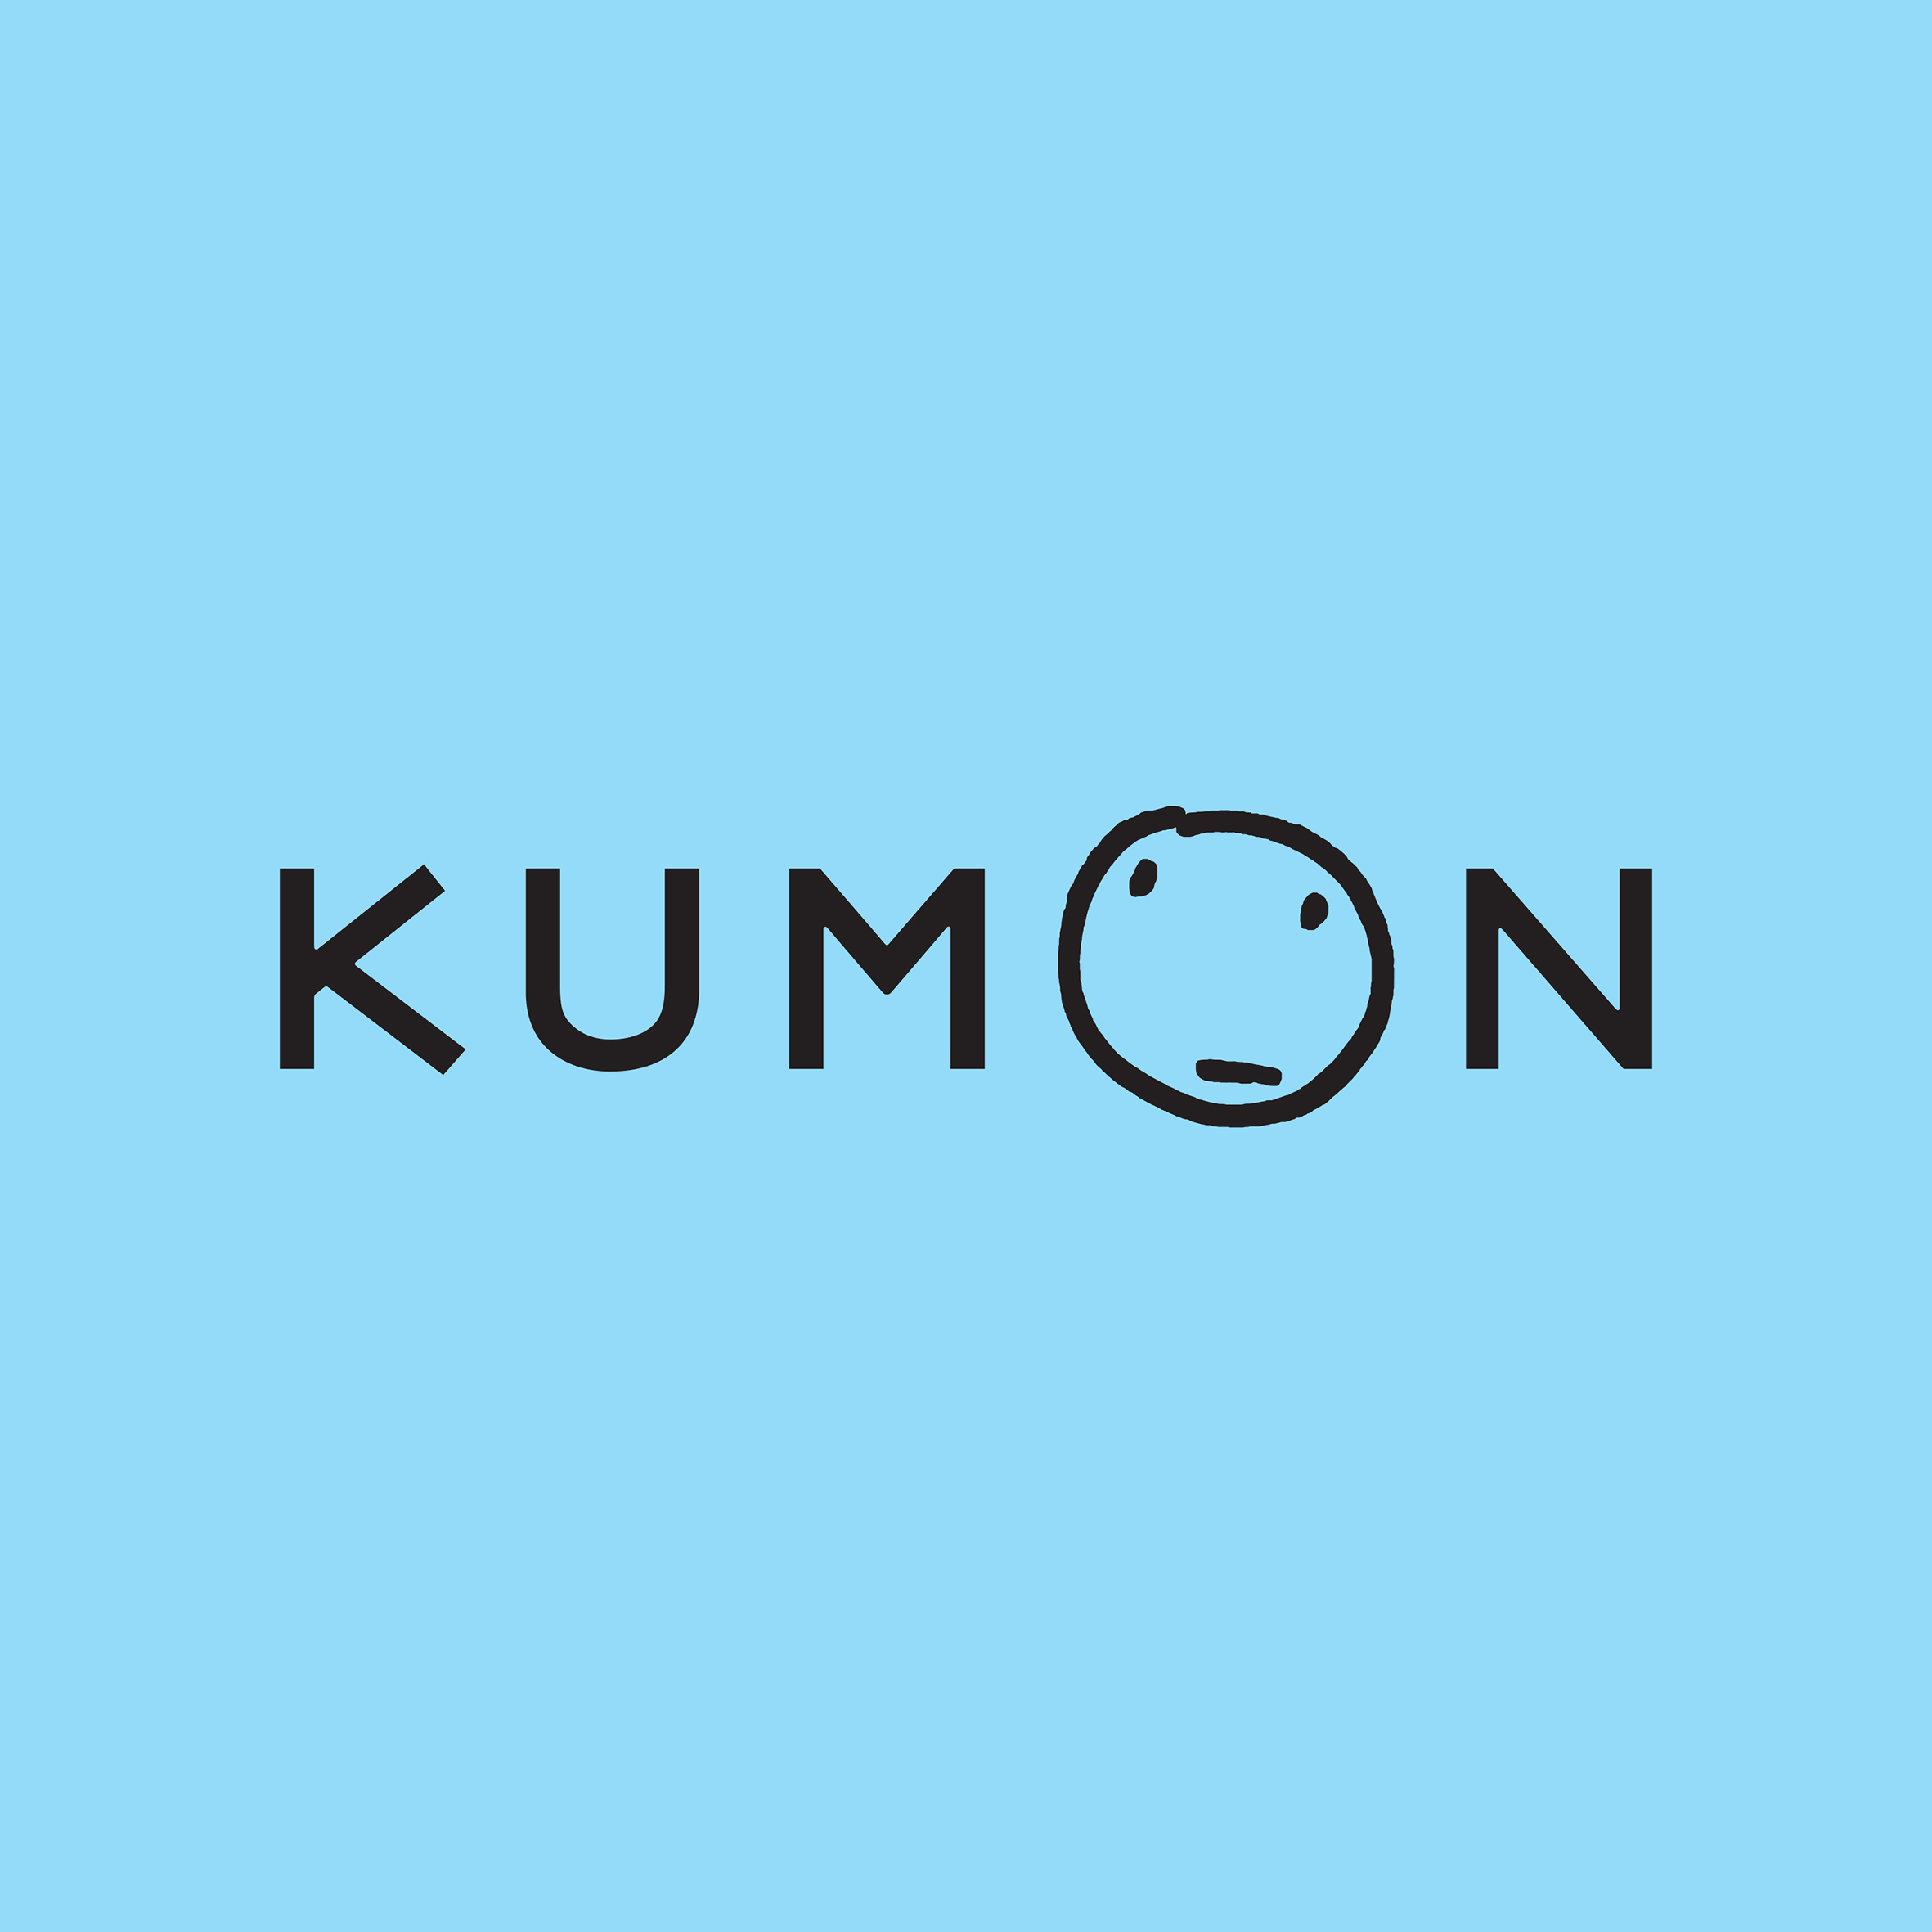 Kumon - Maths & English Classes for Children